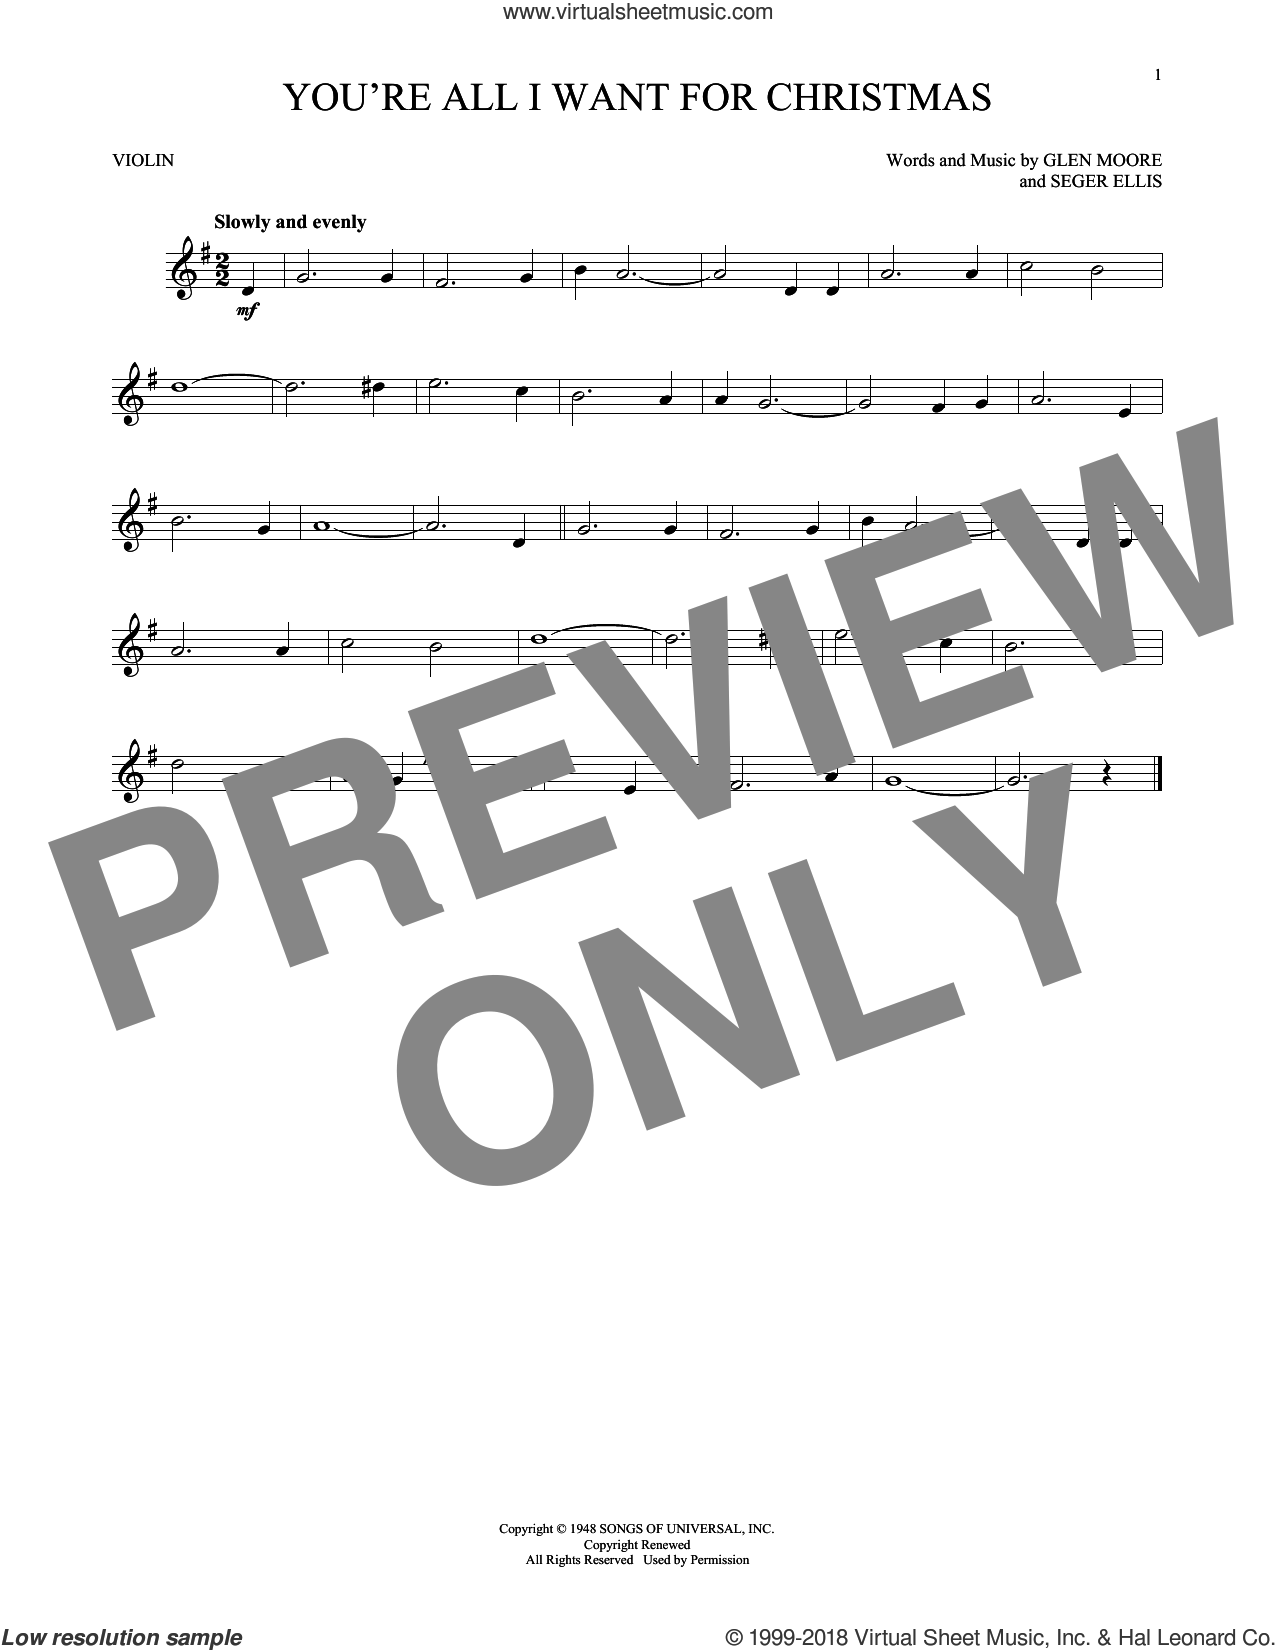 You're All I Want For Christmas sheet music for violin solo by Seger Ellis and Glen Moore. Score Image Preview.